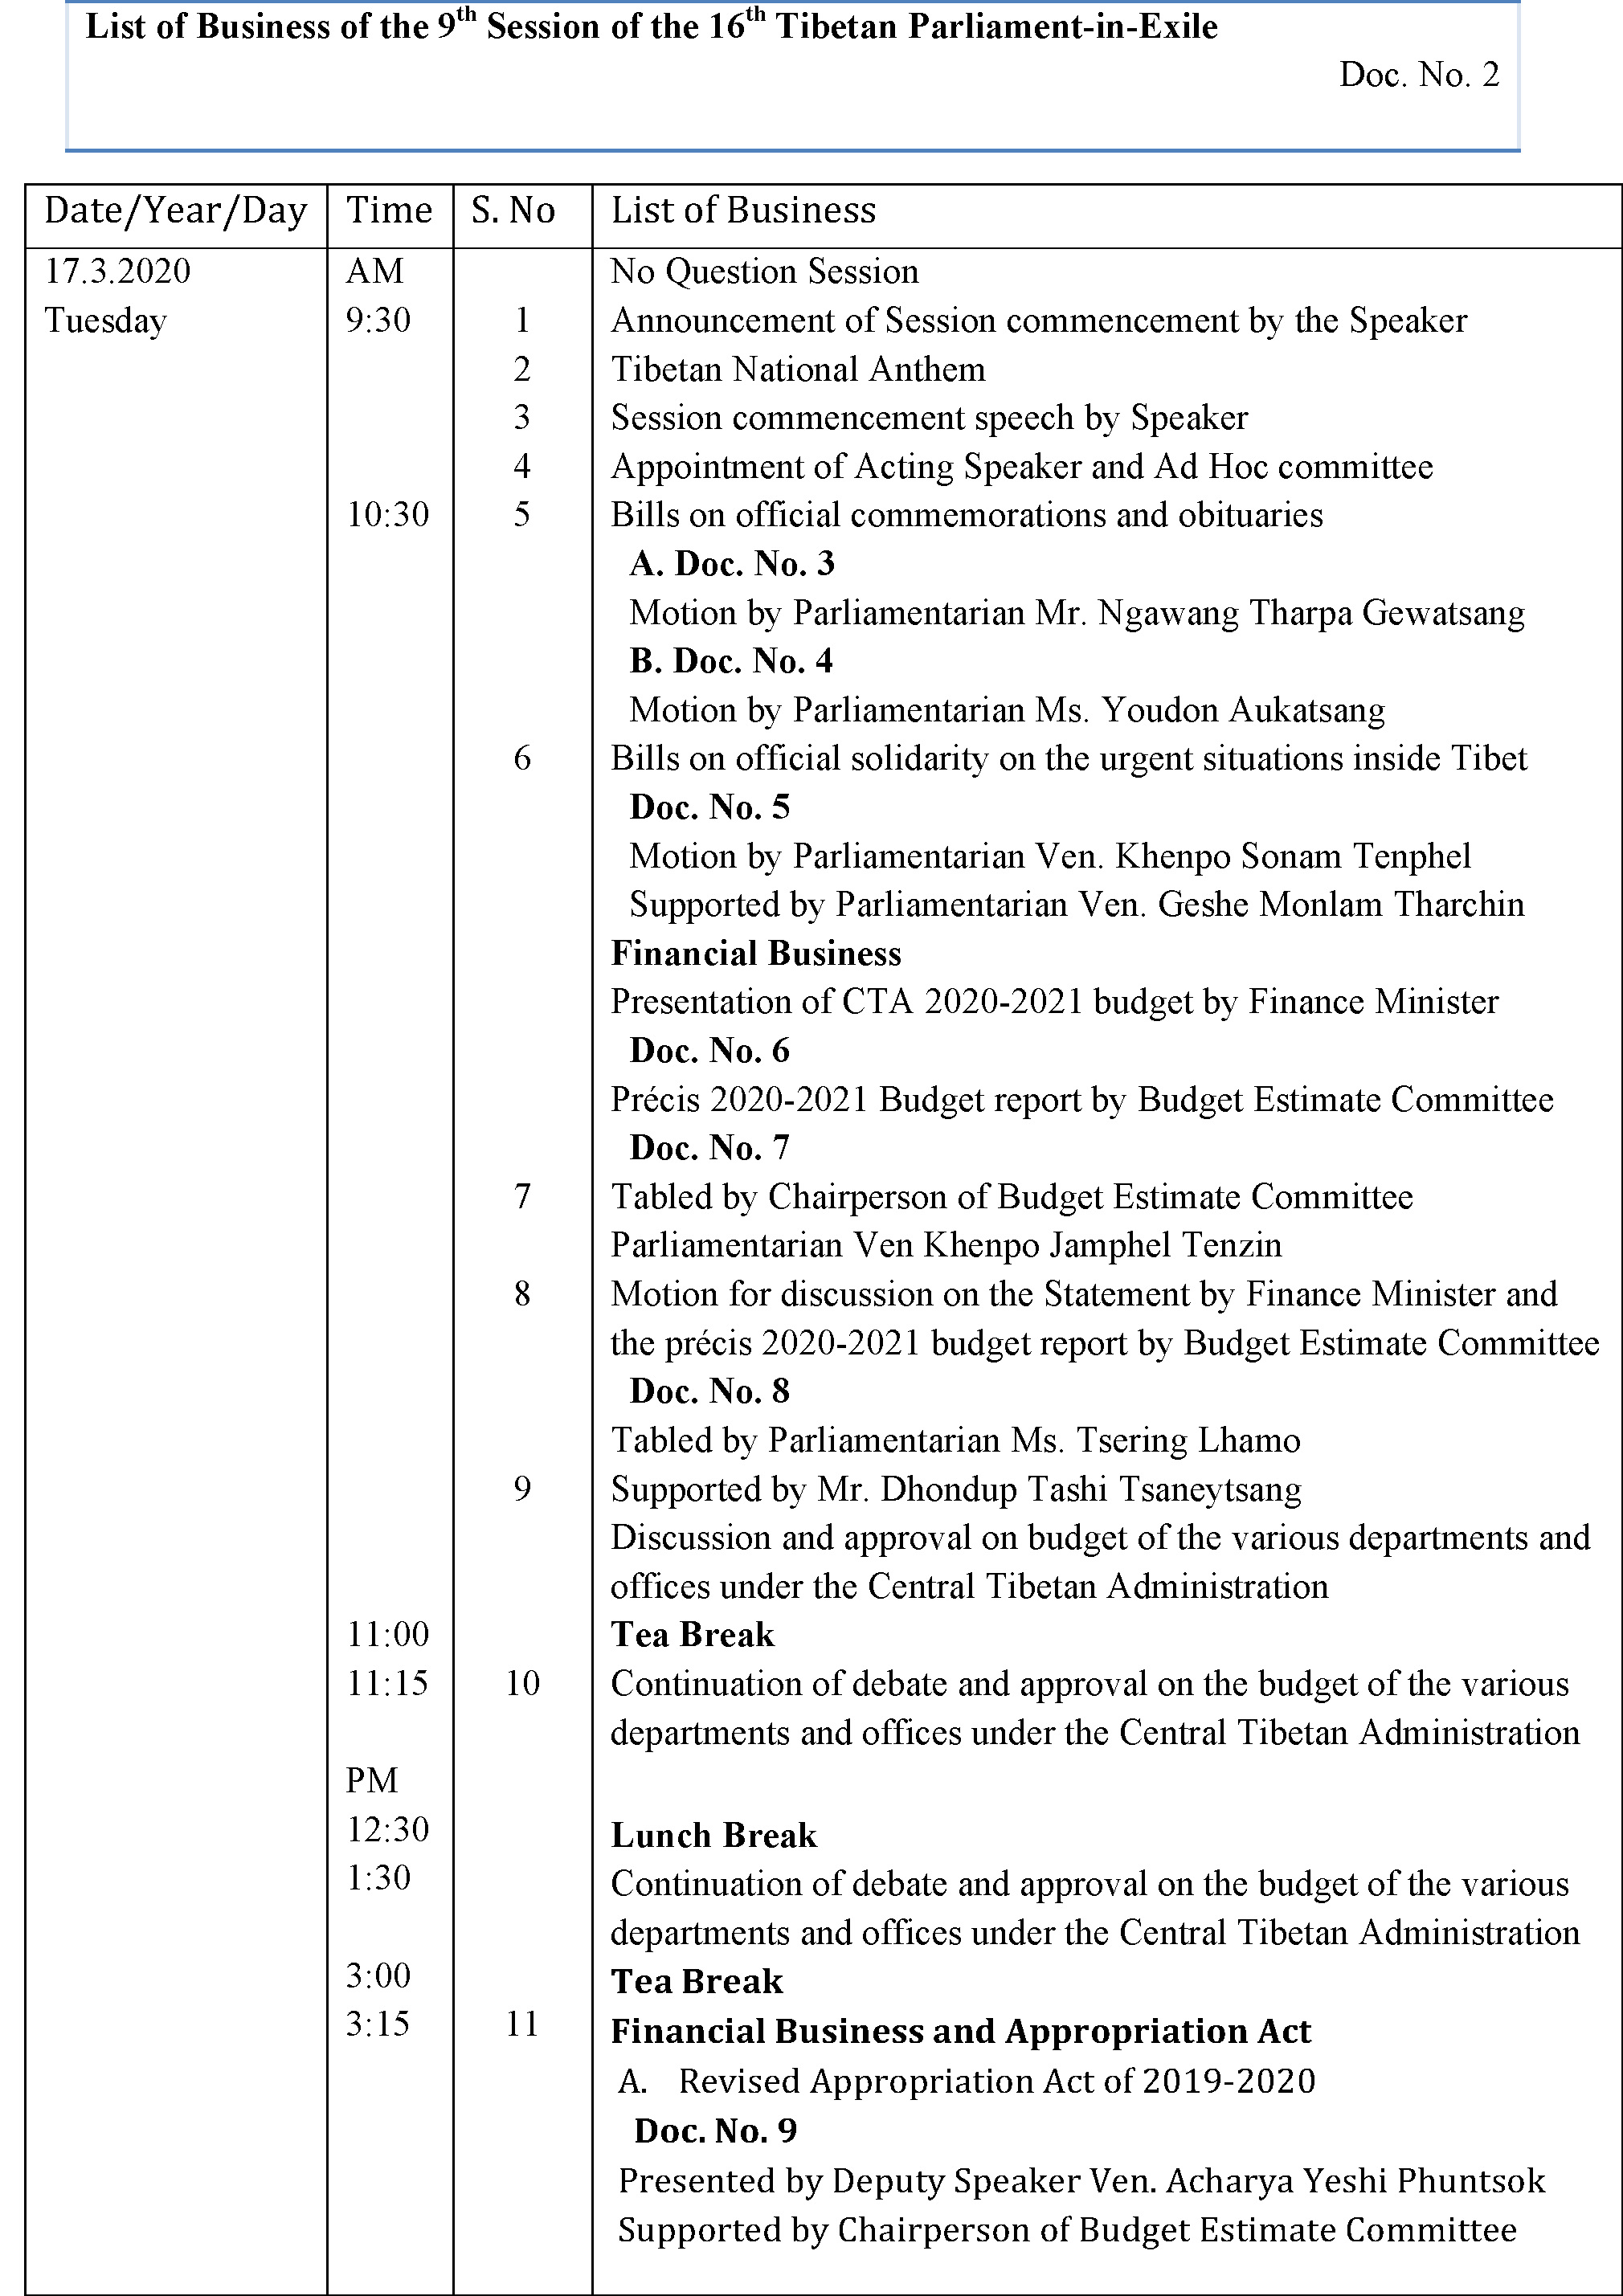 List of business of the 9th Session of the 16th Tibetan Parliament-in-Exile